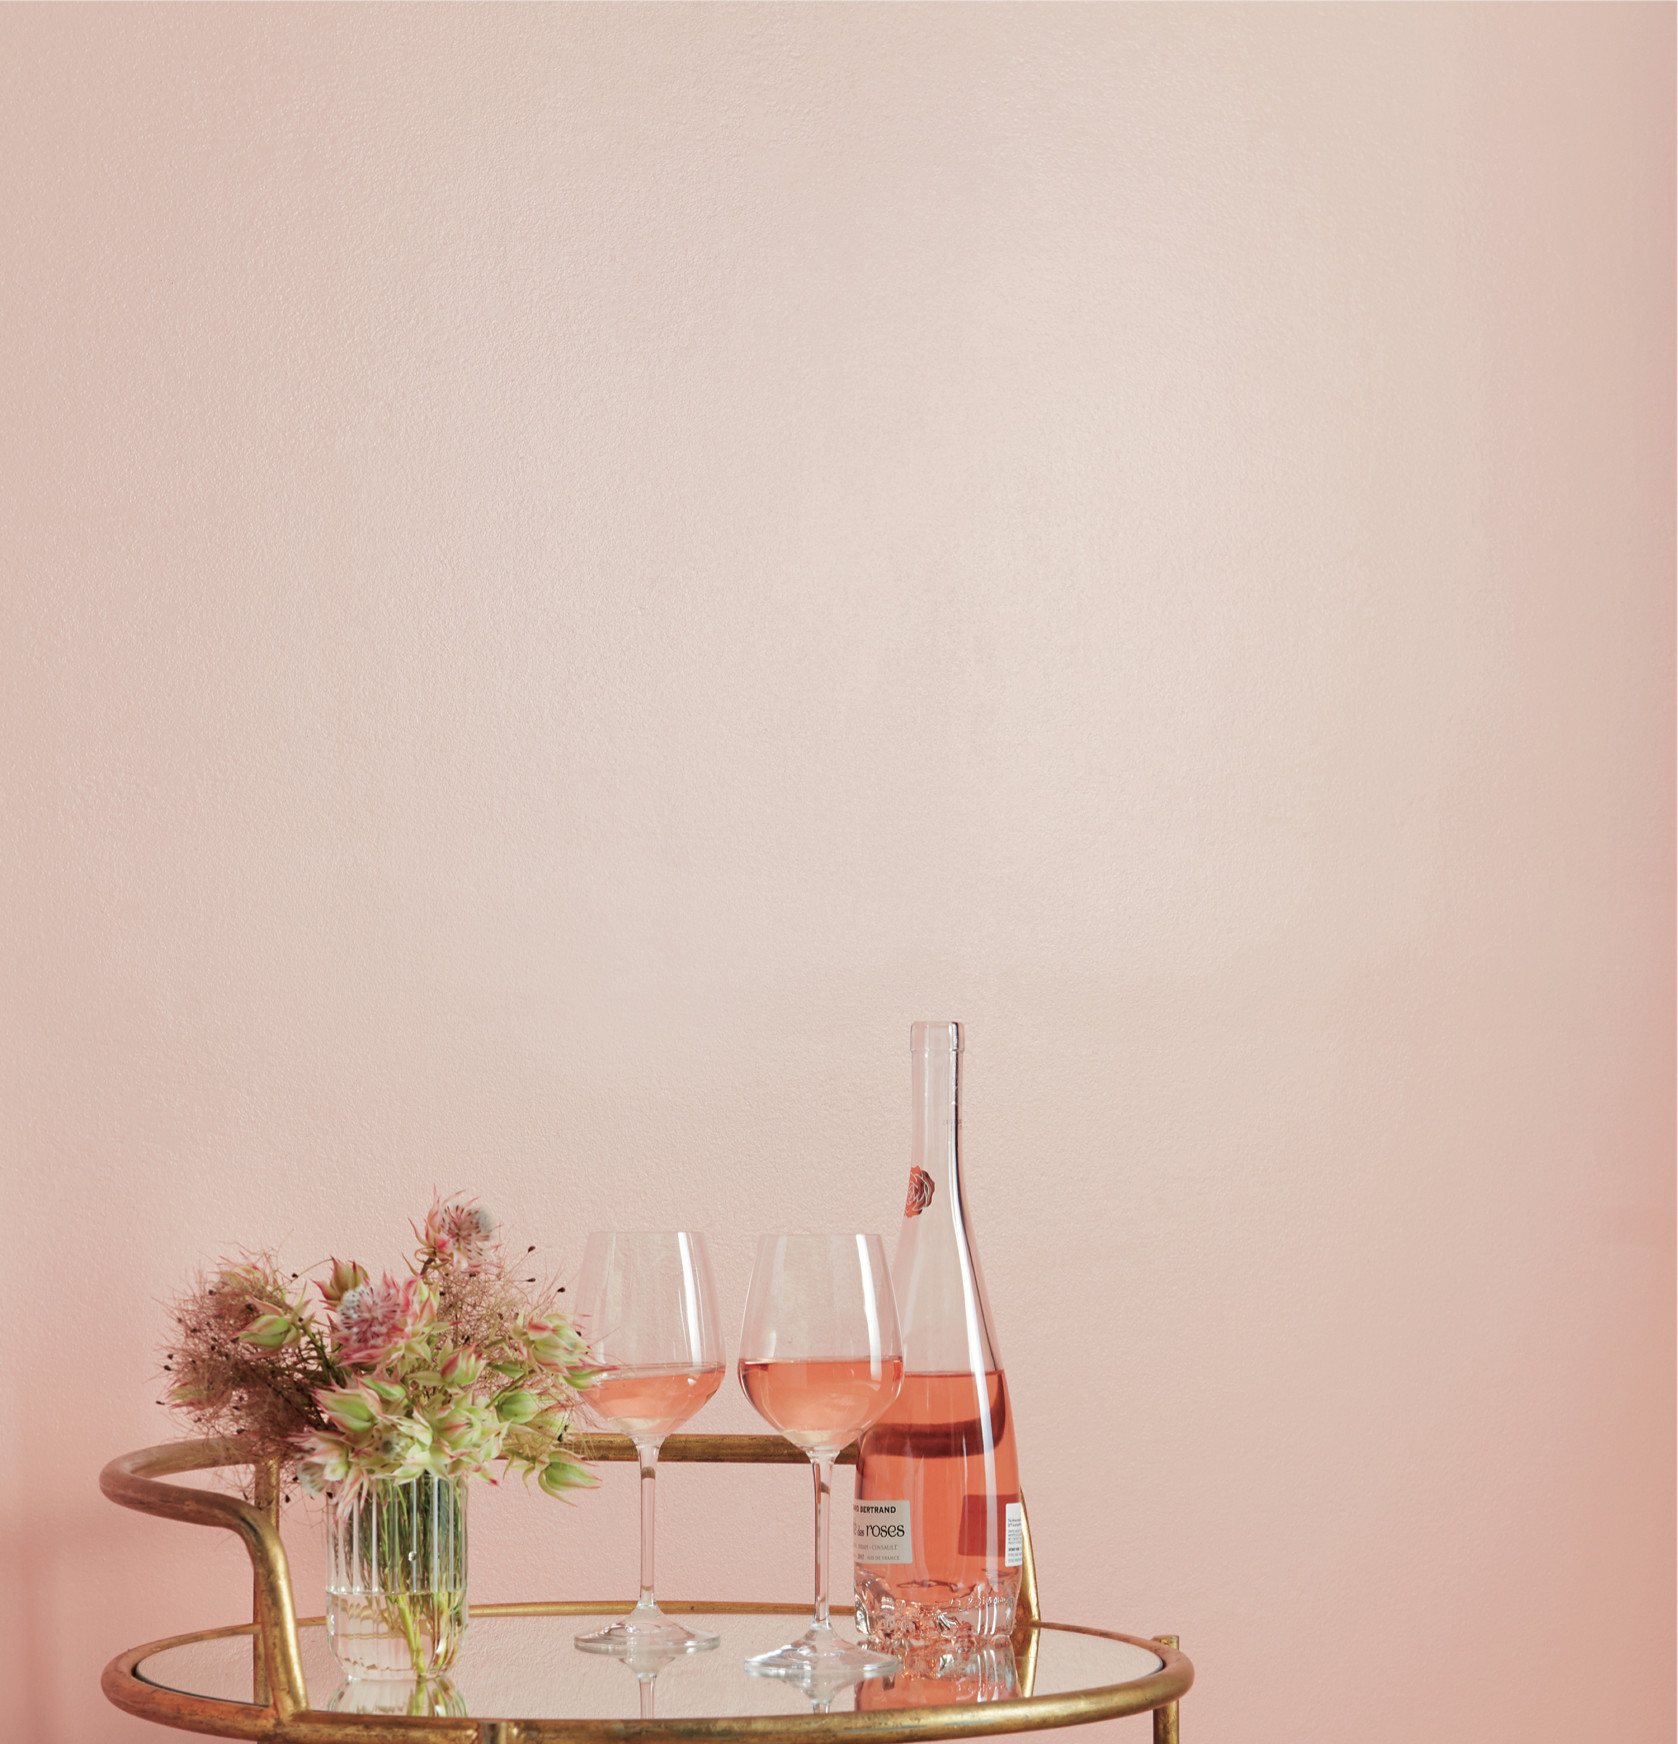 wall painted with, Rosé Season by Clare, pink